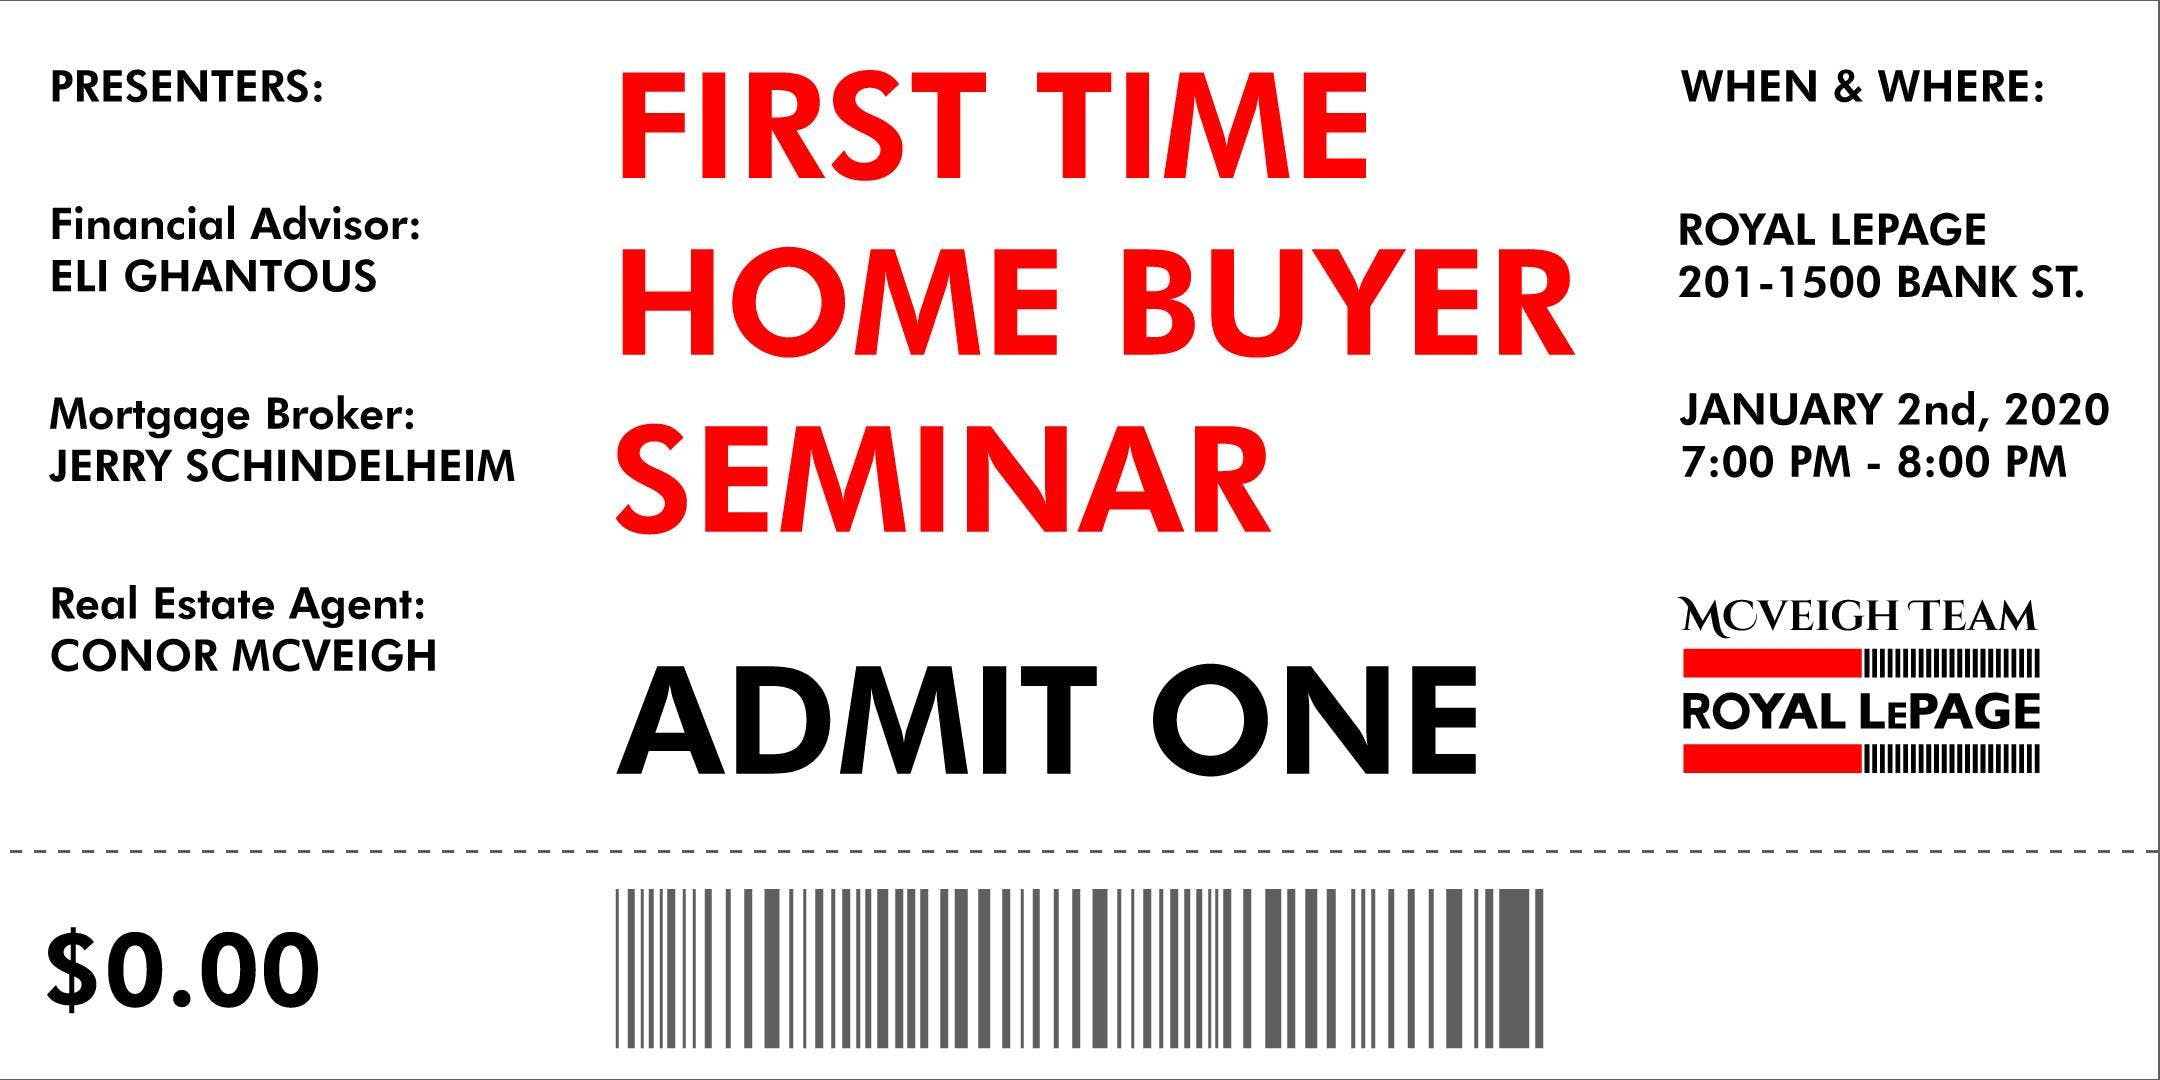 First Time Home Buyer 2020.First Time Home Buyer Seminar Ottawa Free Jan At Royal